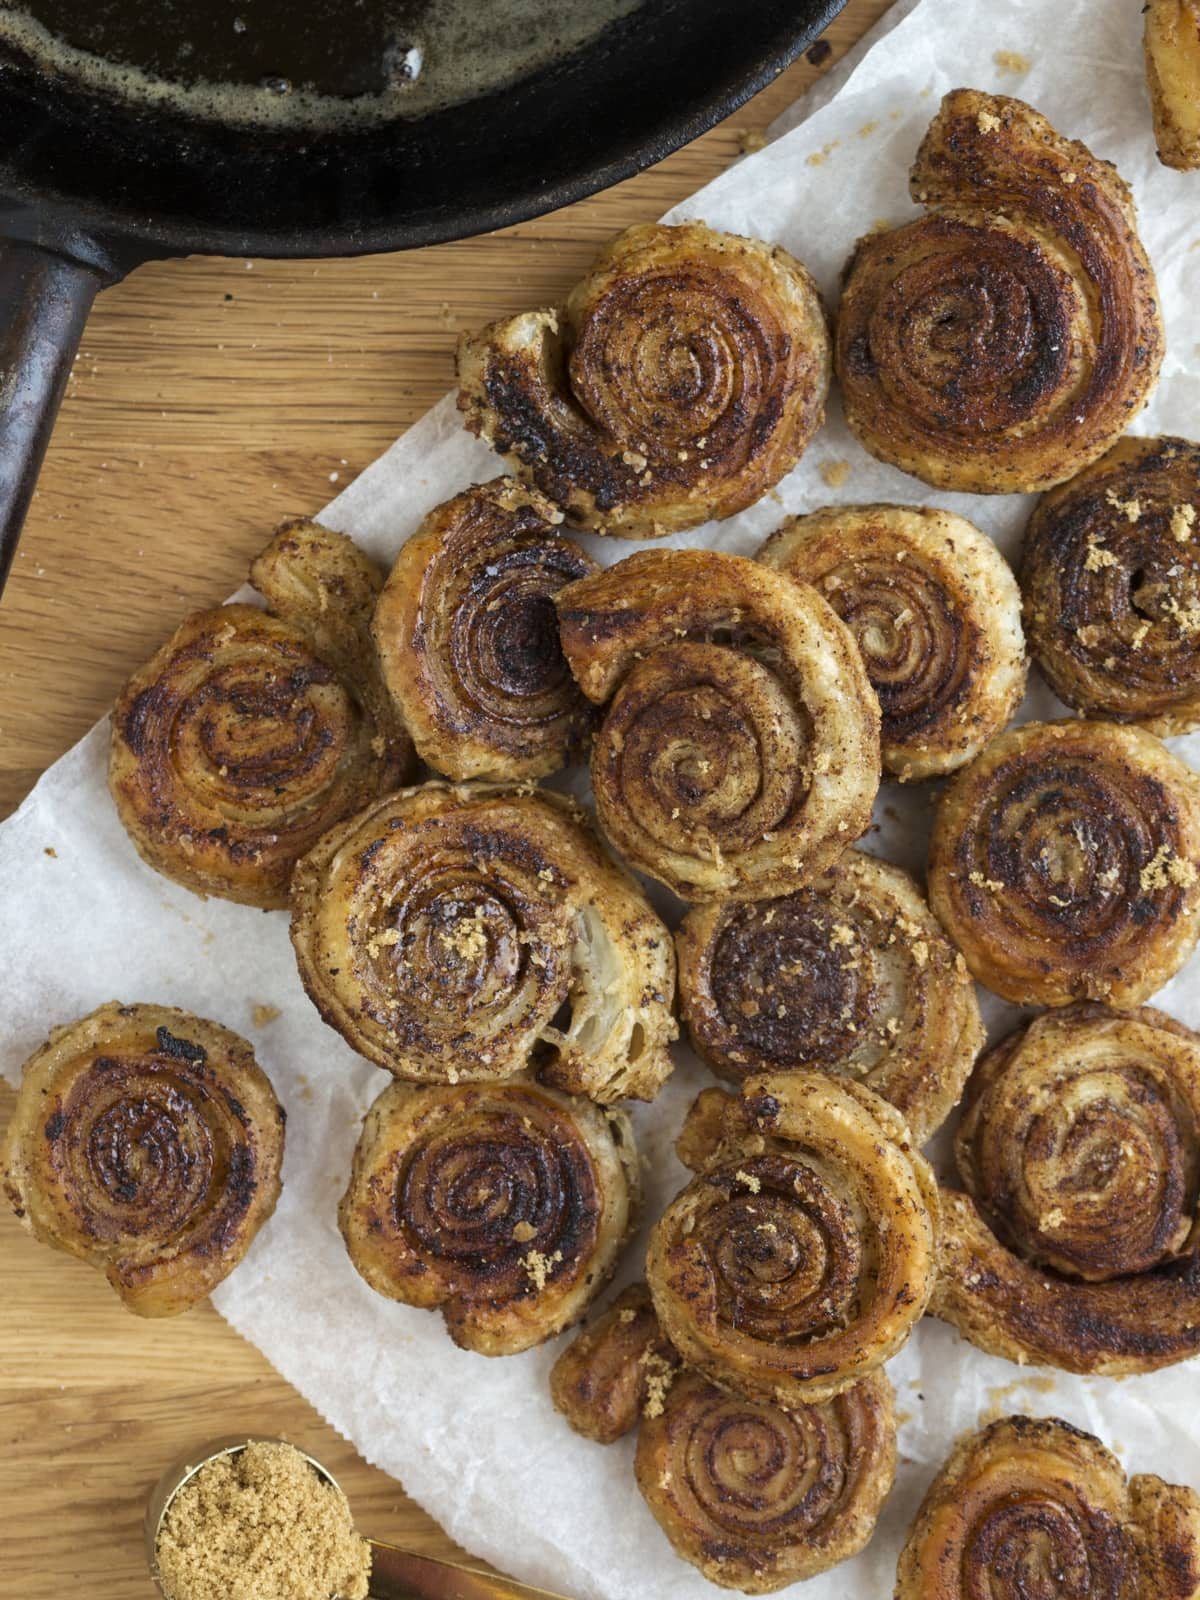 Cinnamon pinwheels made on the stovetop.